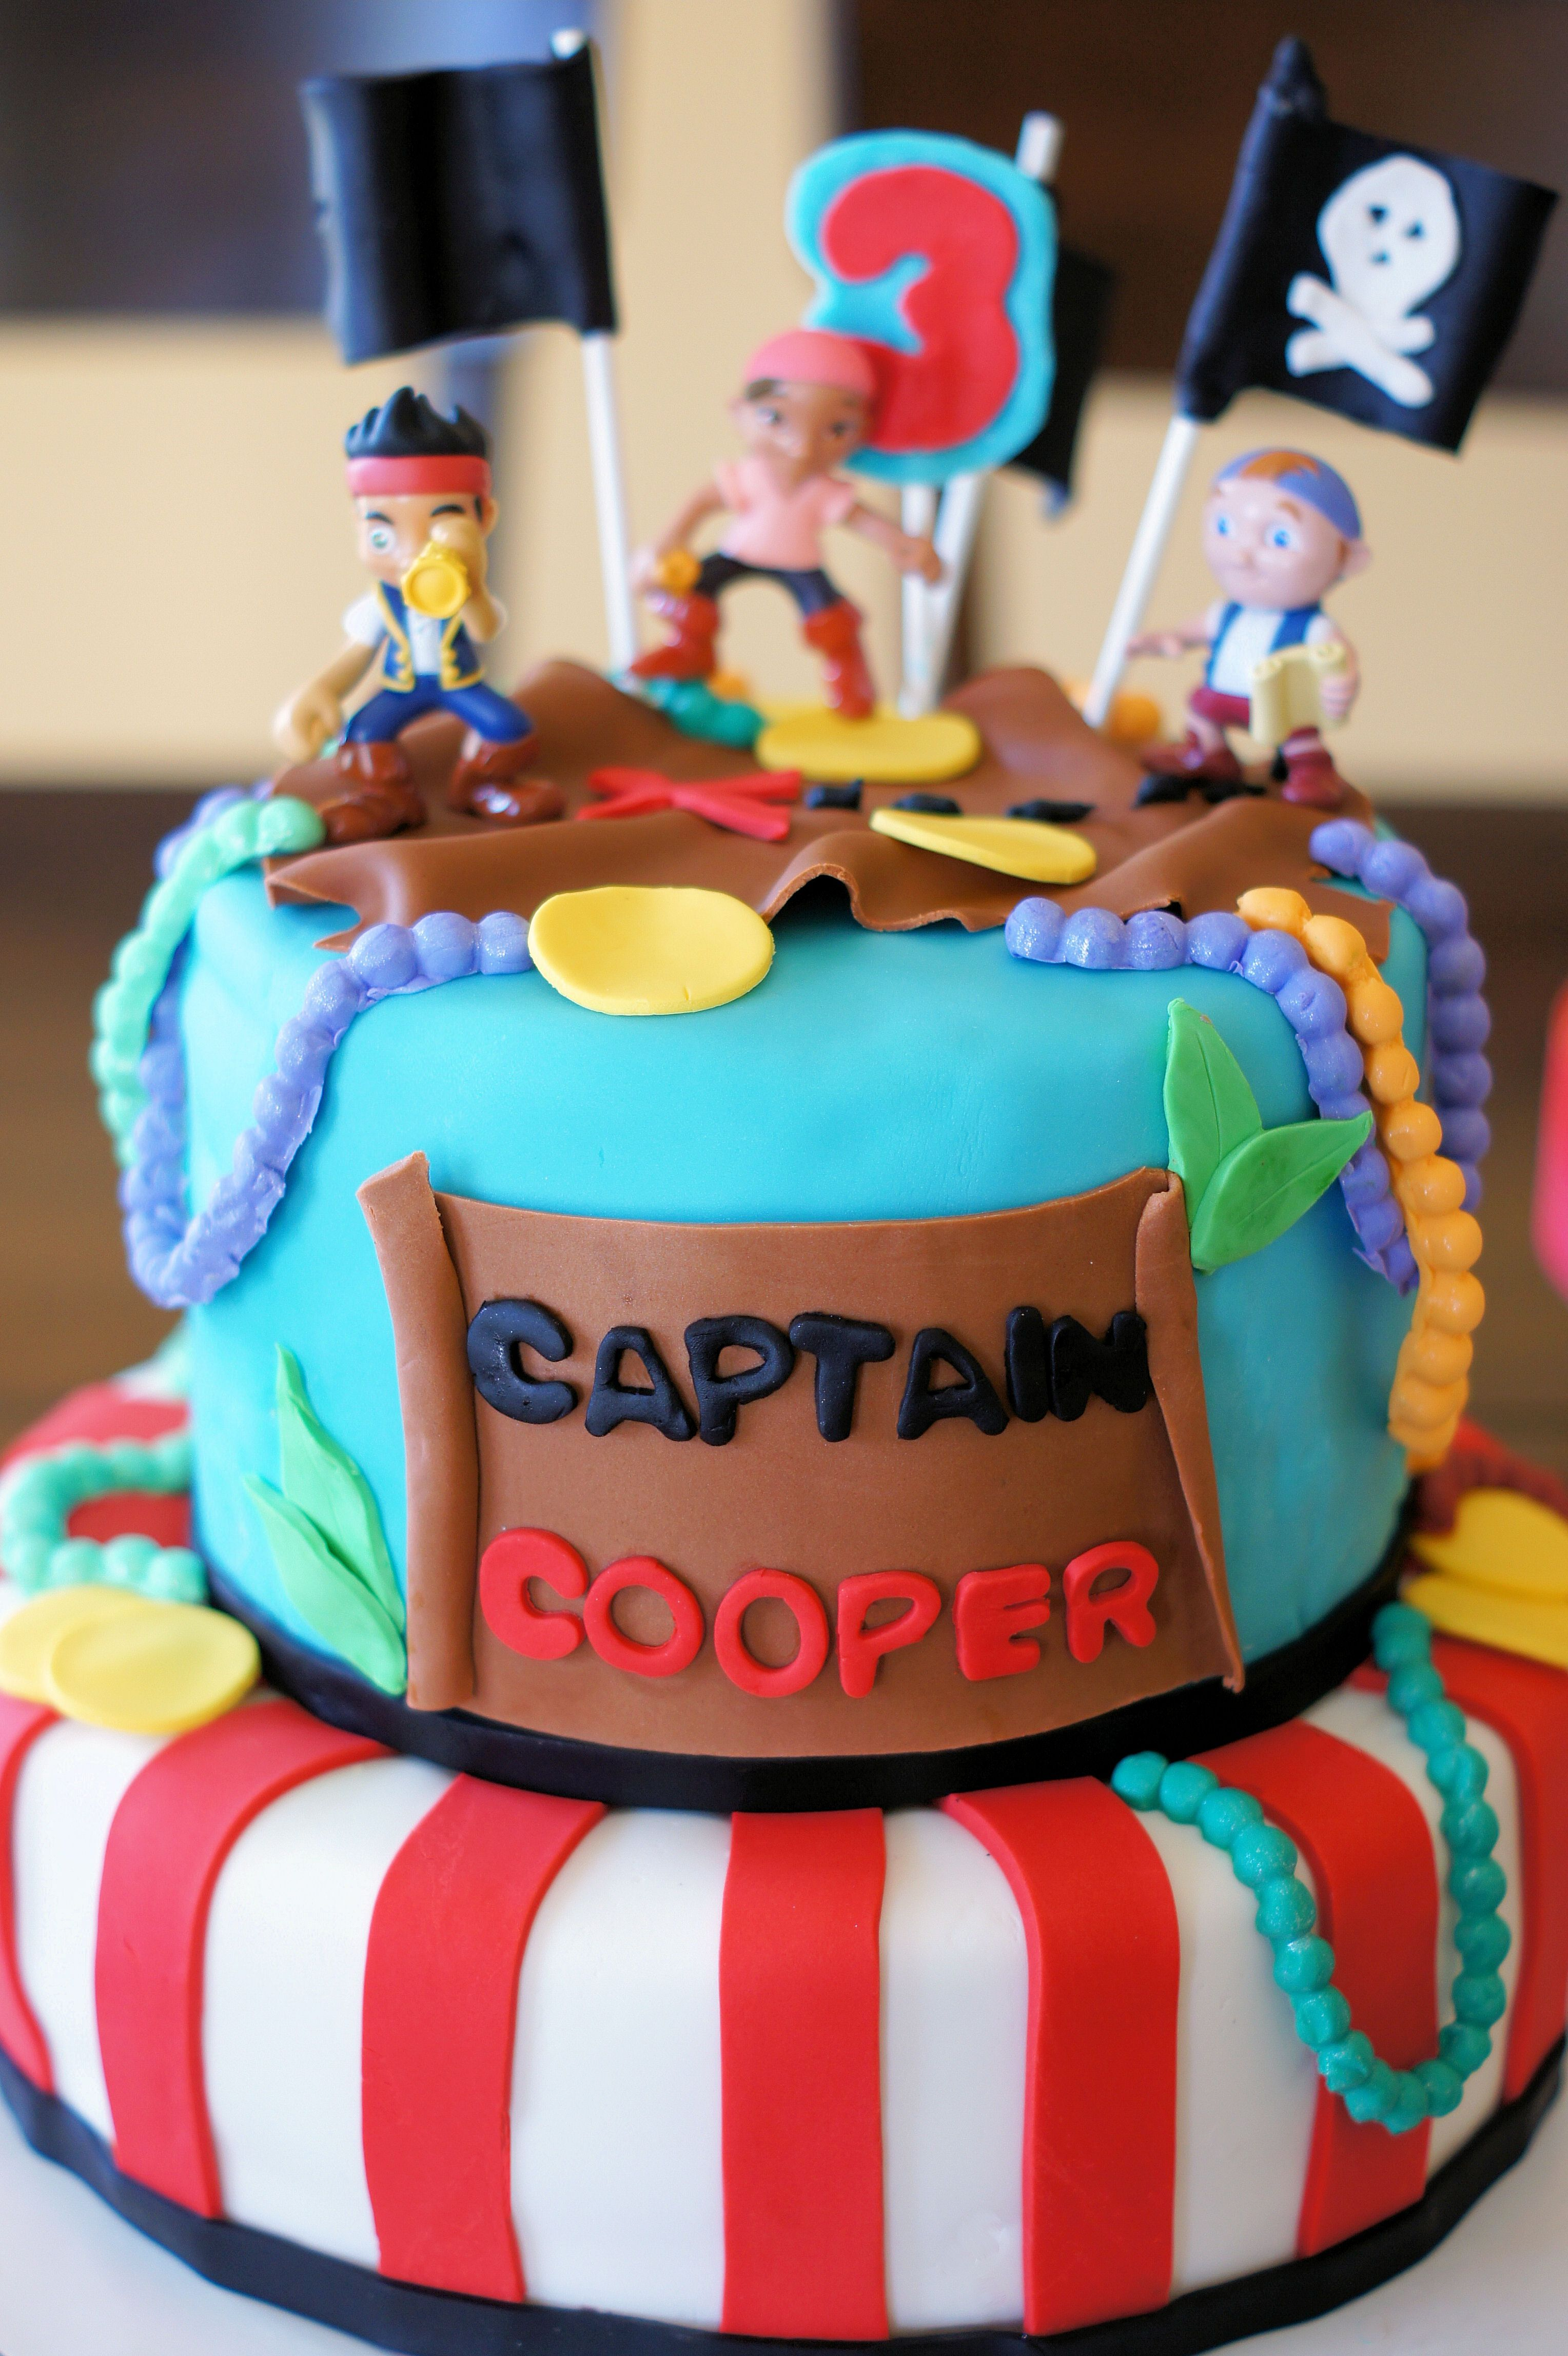 Jake And The Neverland Pirates Cake Cake Inspirations Pinterest